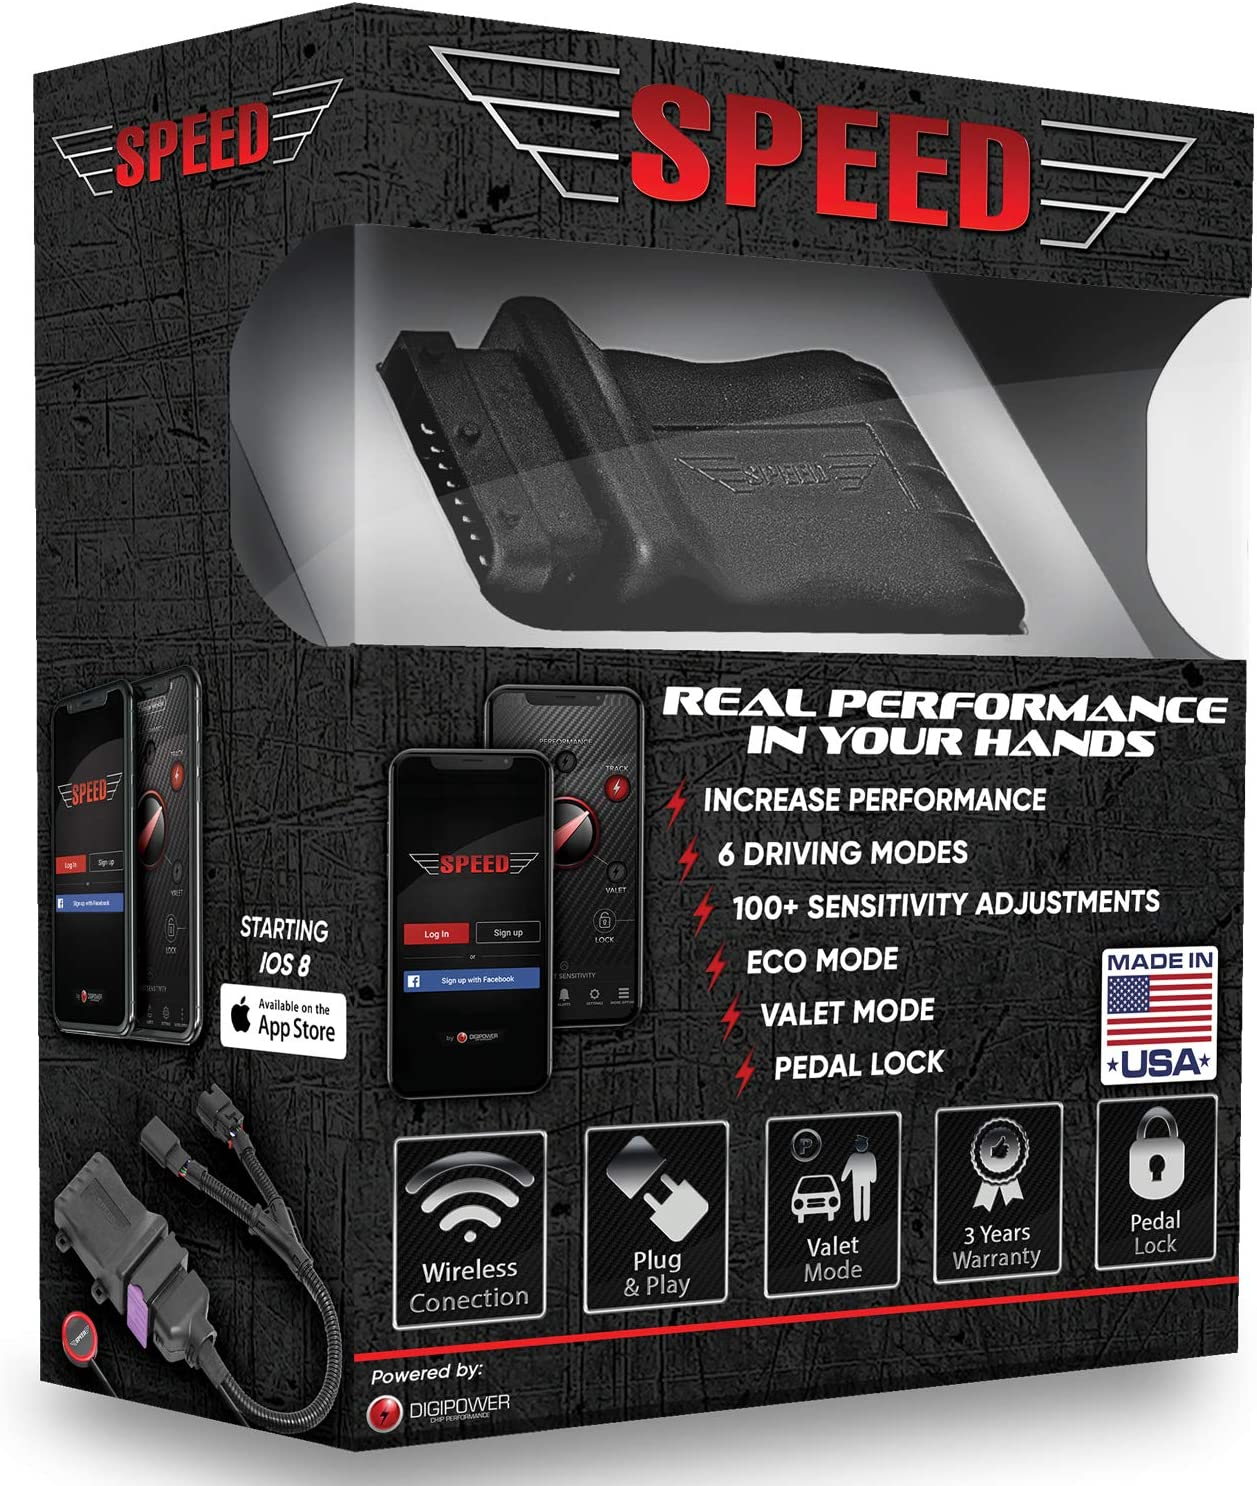 Digipower USA 20092 Speed Bluetooth Throttle Response Controller Fits 2007-2019 Dodge Ram 1500-Fits All Trim Packages